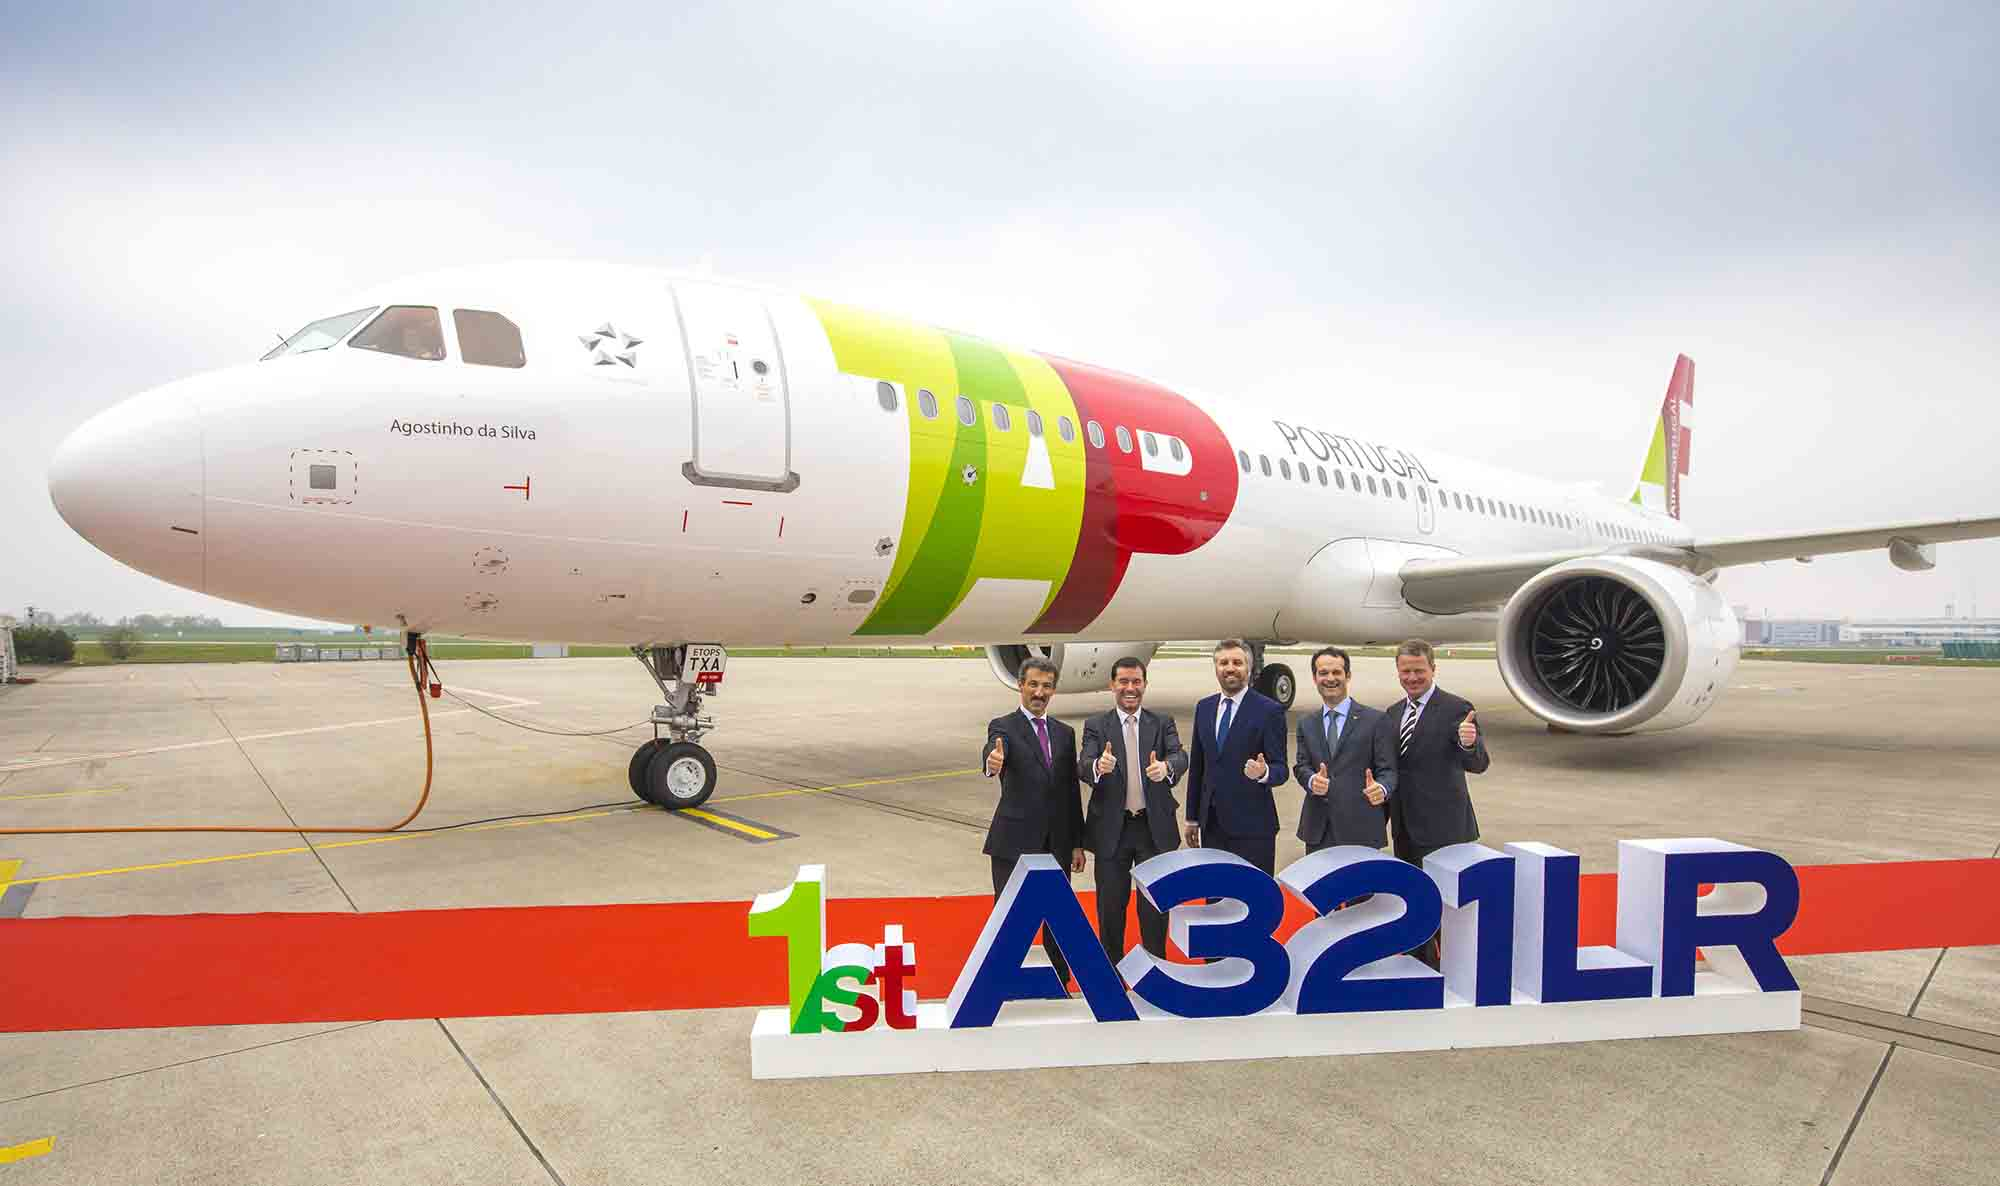 TAP Air recibe su A321LR